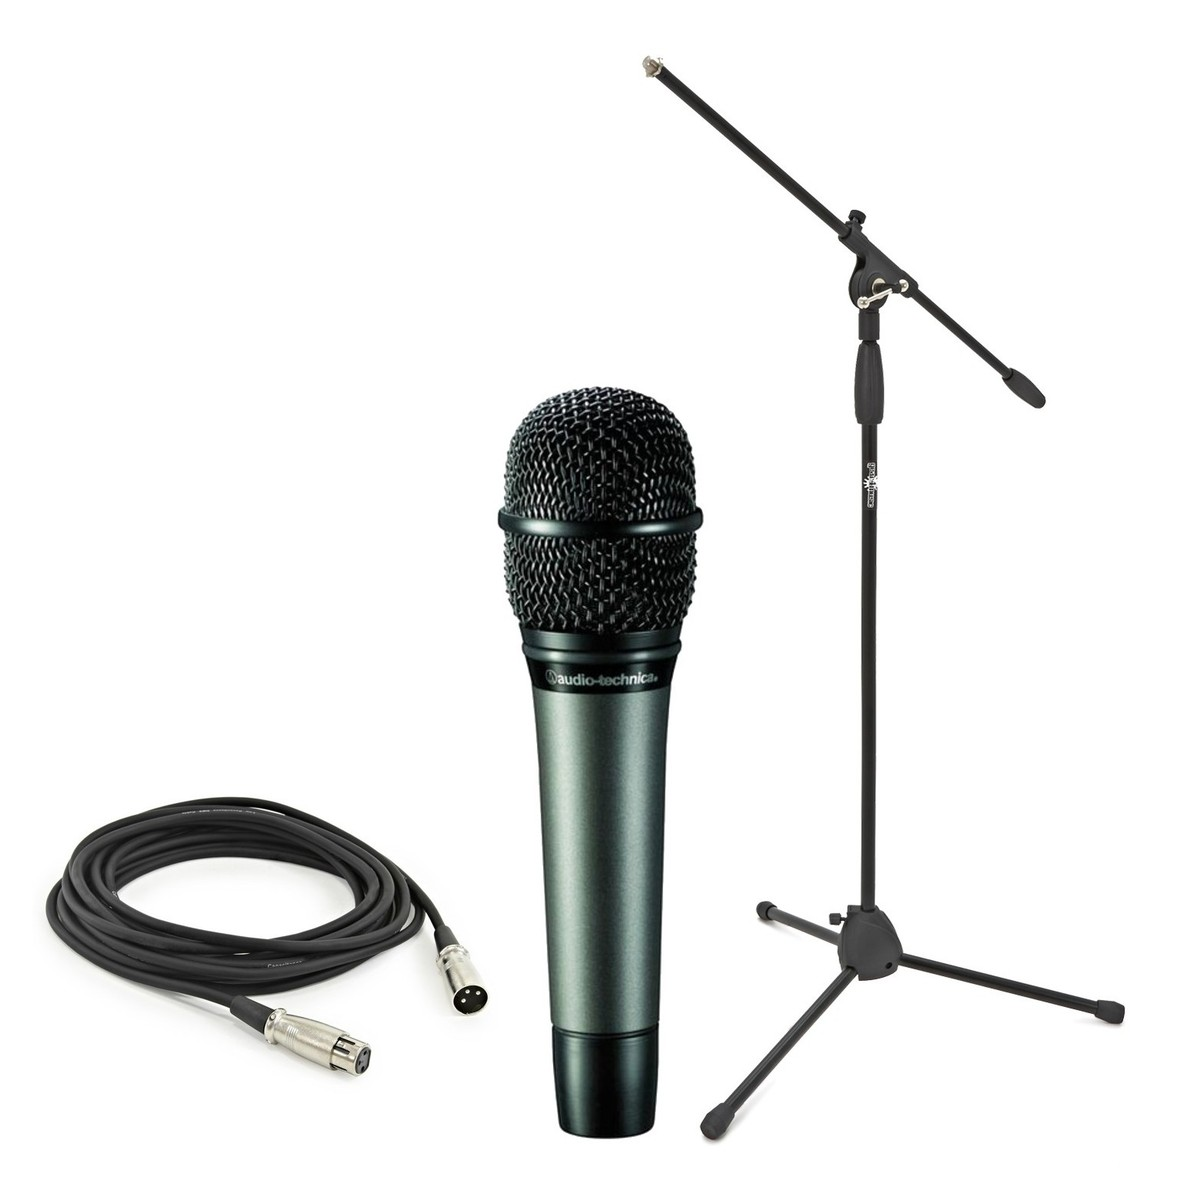 Audio Technica Atm610 With Boom Mic Stand And Cable At Gear4music